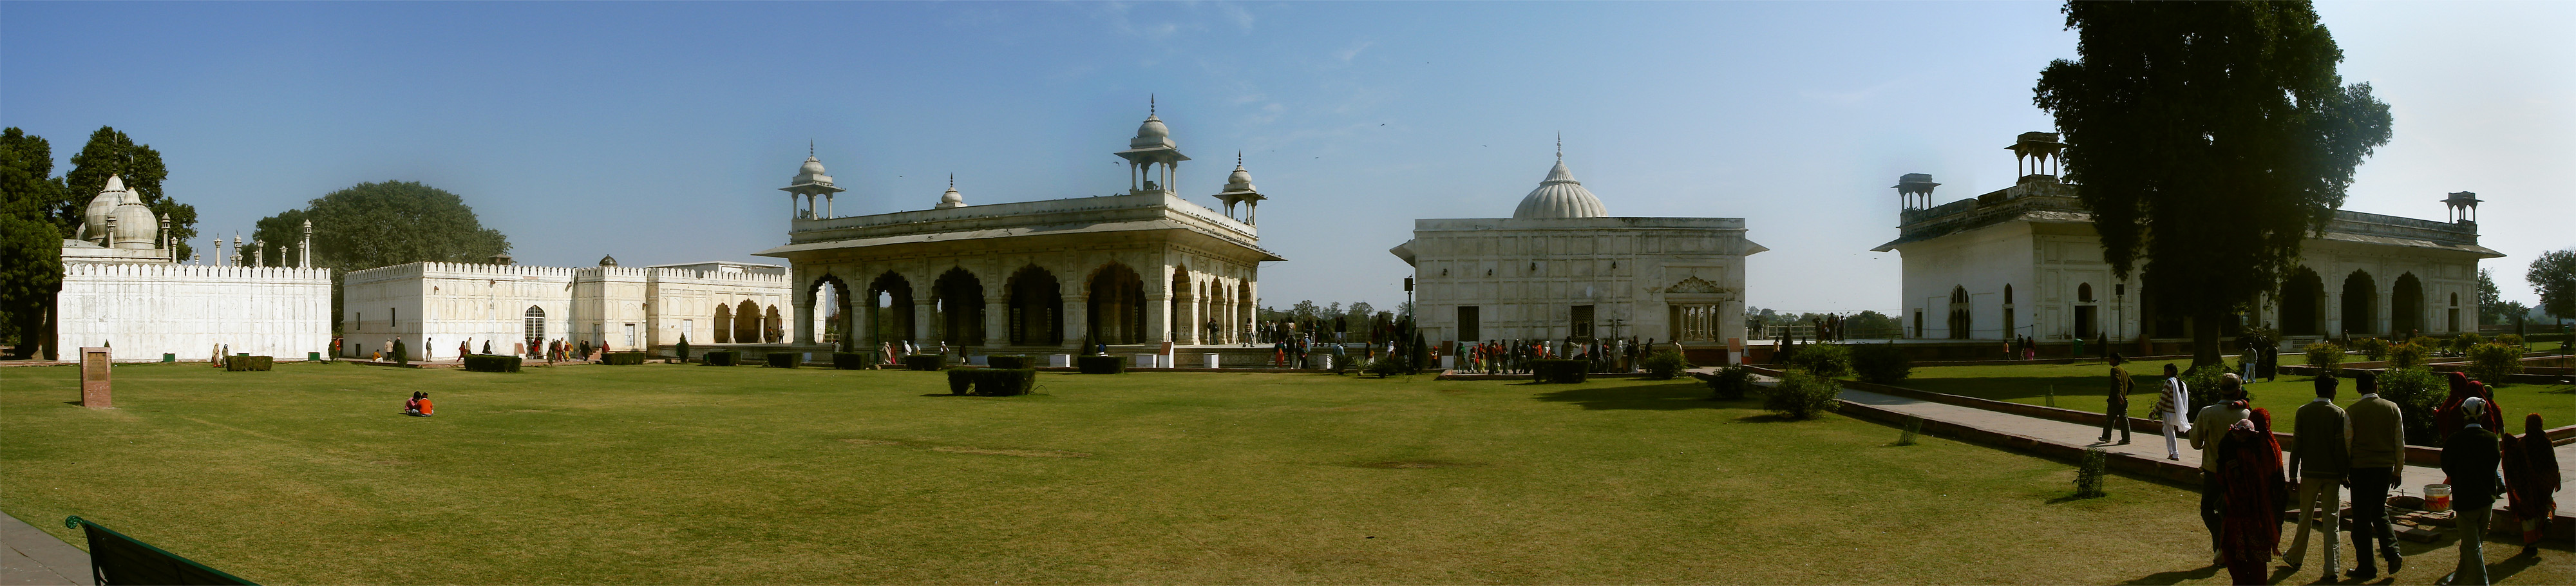 http://upload.wikimedia.org/wikipedia/commons/e/e5/Red_Fort_courtyard_buildings.jpg